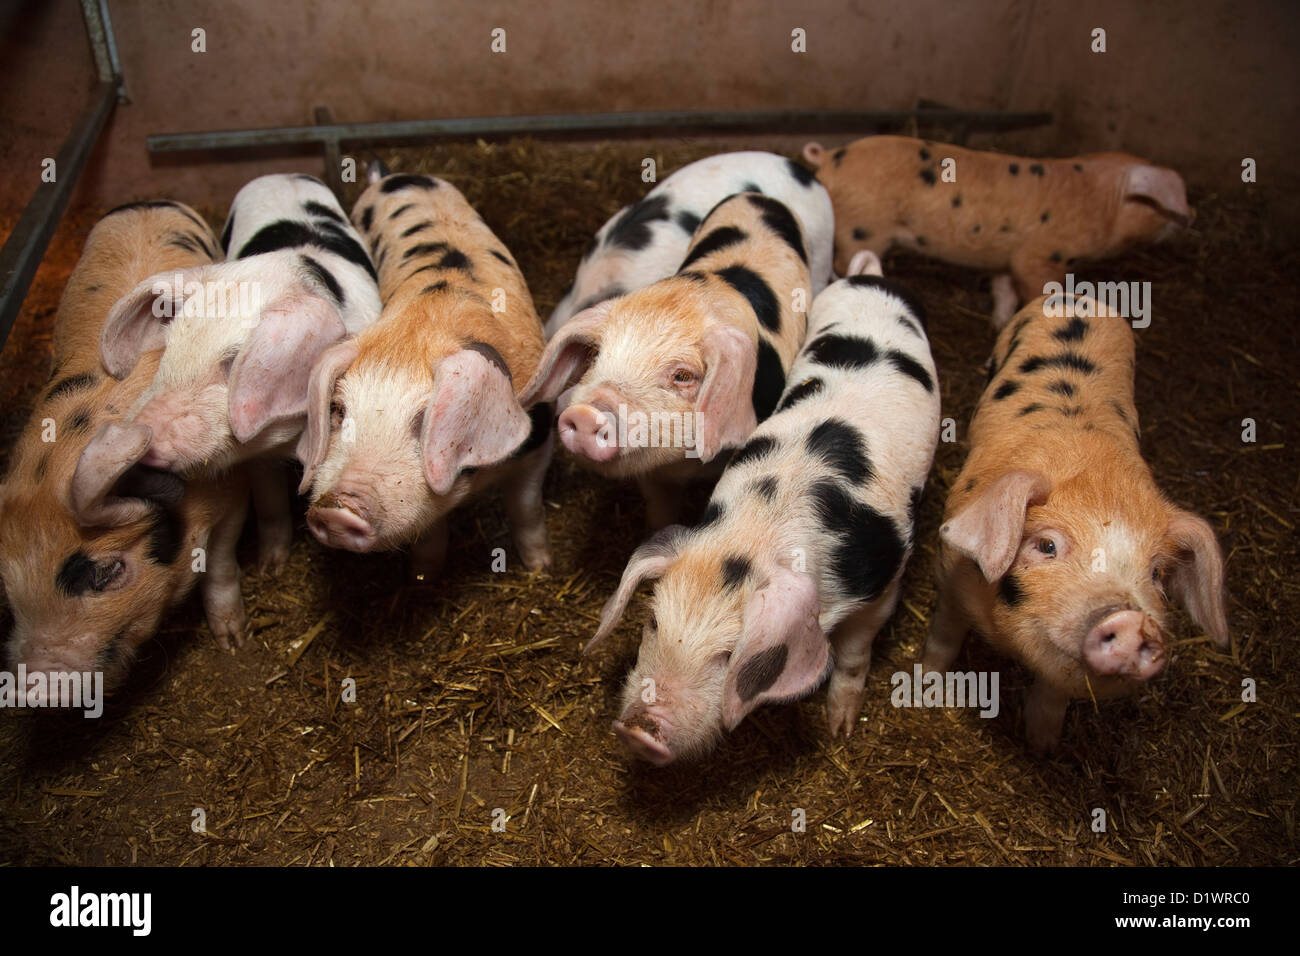 Oxford sandy and black piglets in weening pens - Stock Image